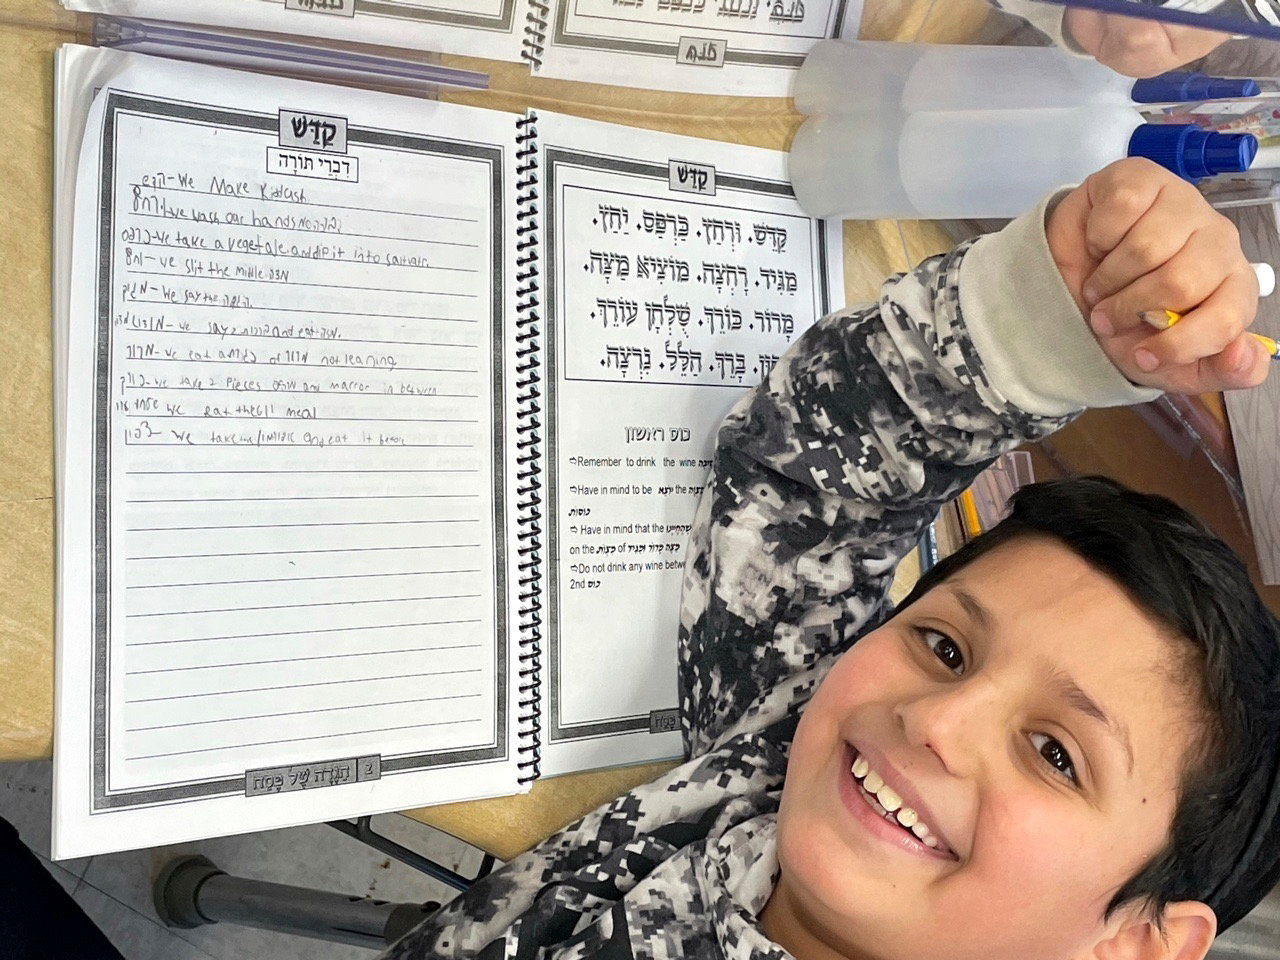 In CAHAL's grade 4-5 class at YOSS, boys learned divrei torah and wrote them in their Haggadahs to read at the Seder.